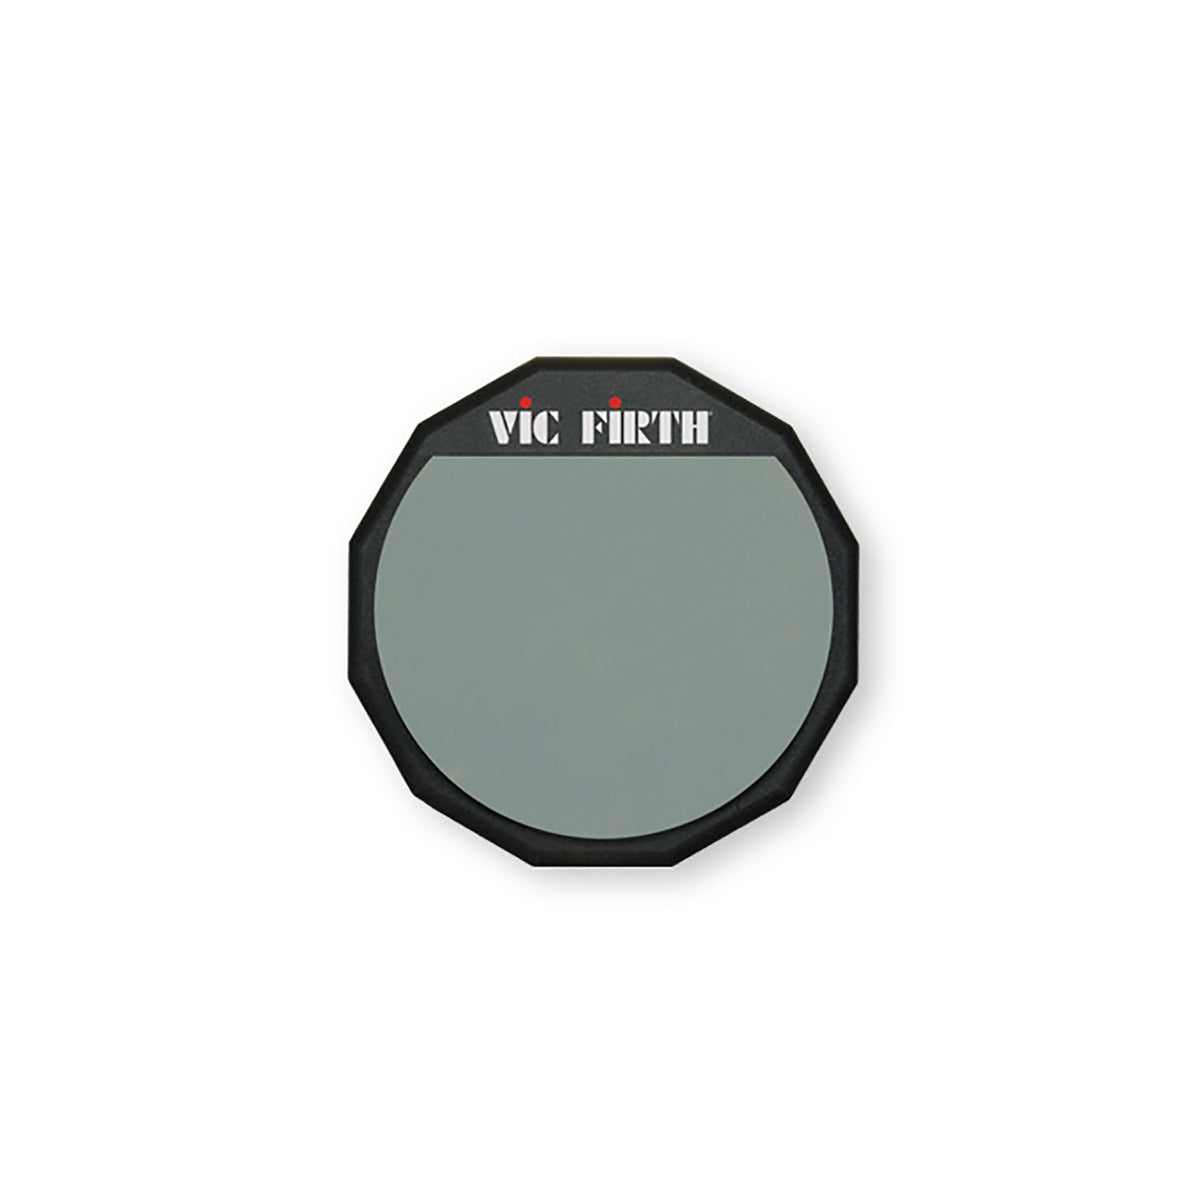 "Vic Firth PAD6 6"" Single Sided Soft Rubber Practice Pad"